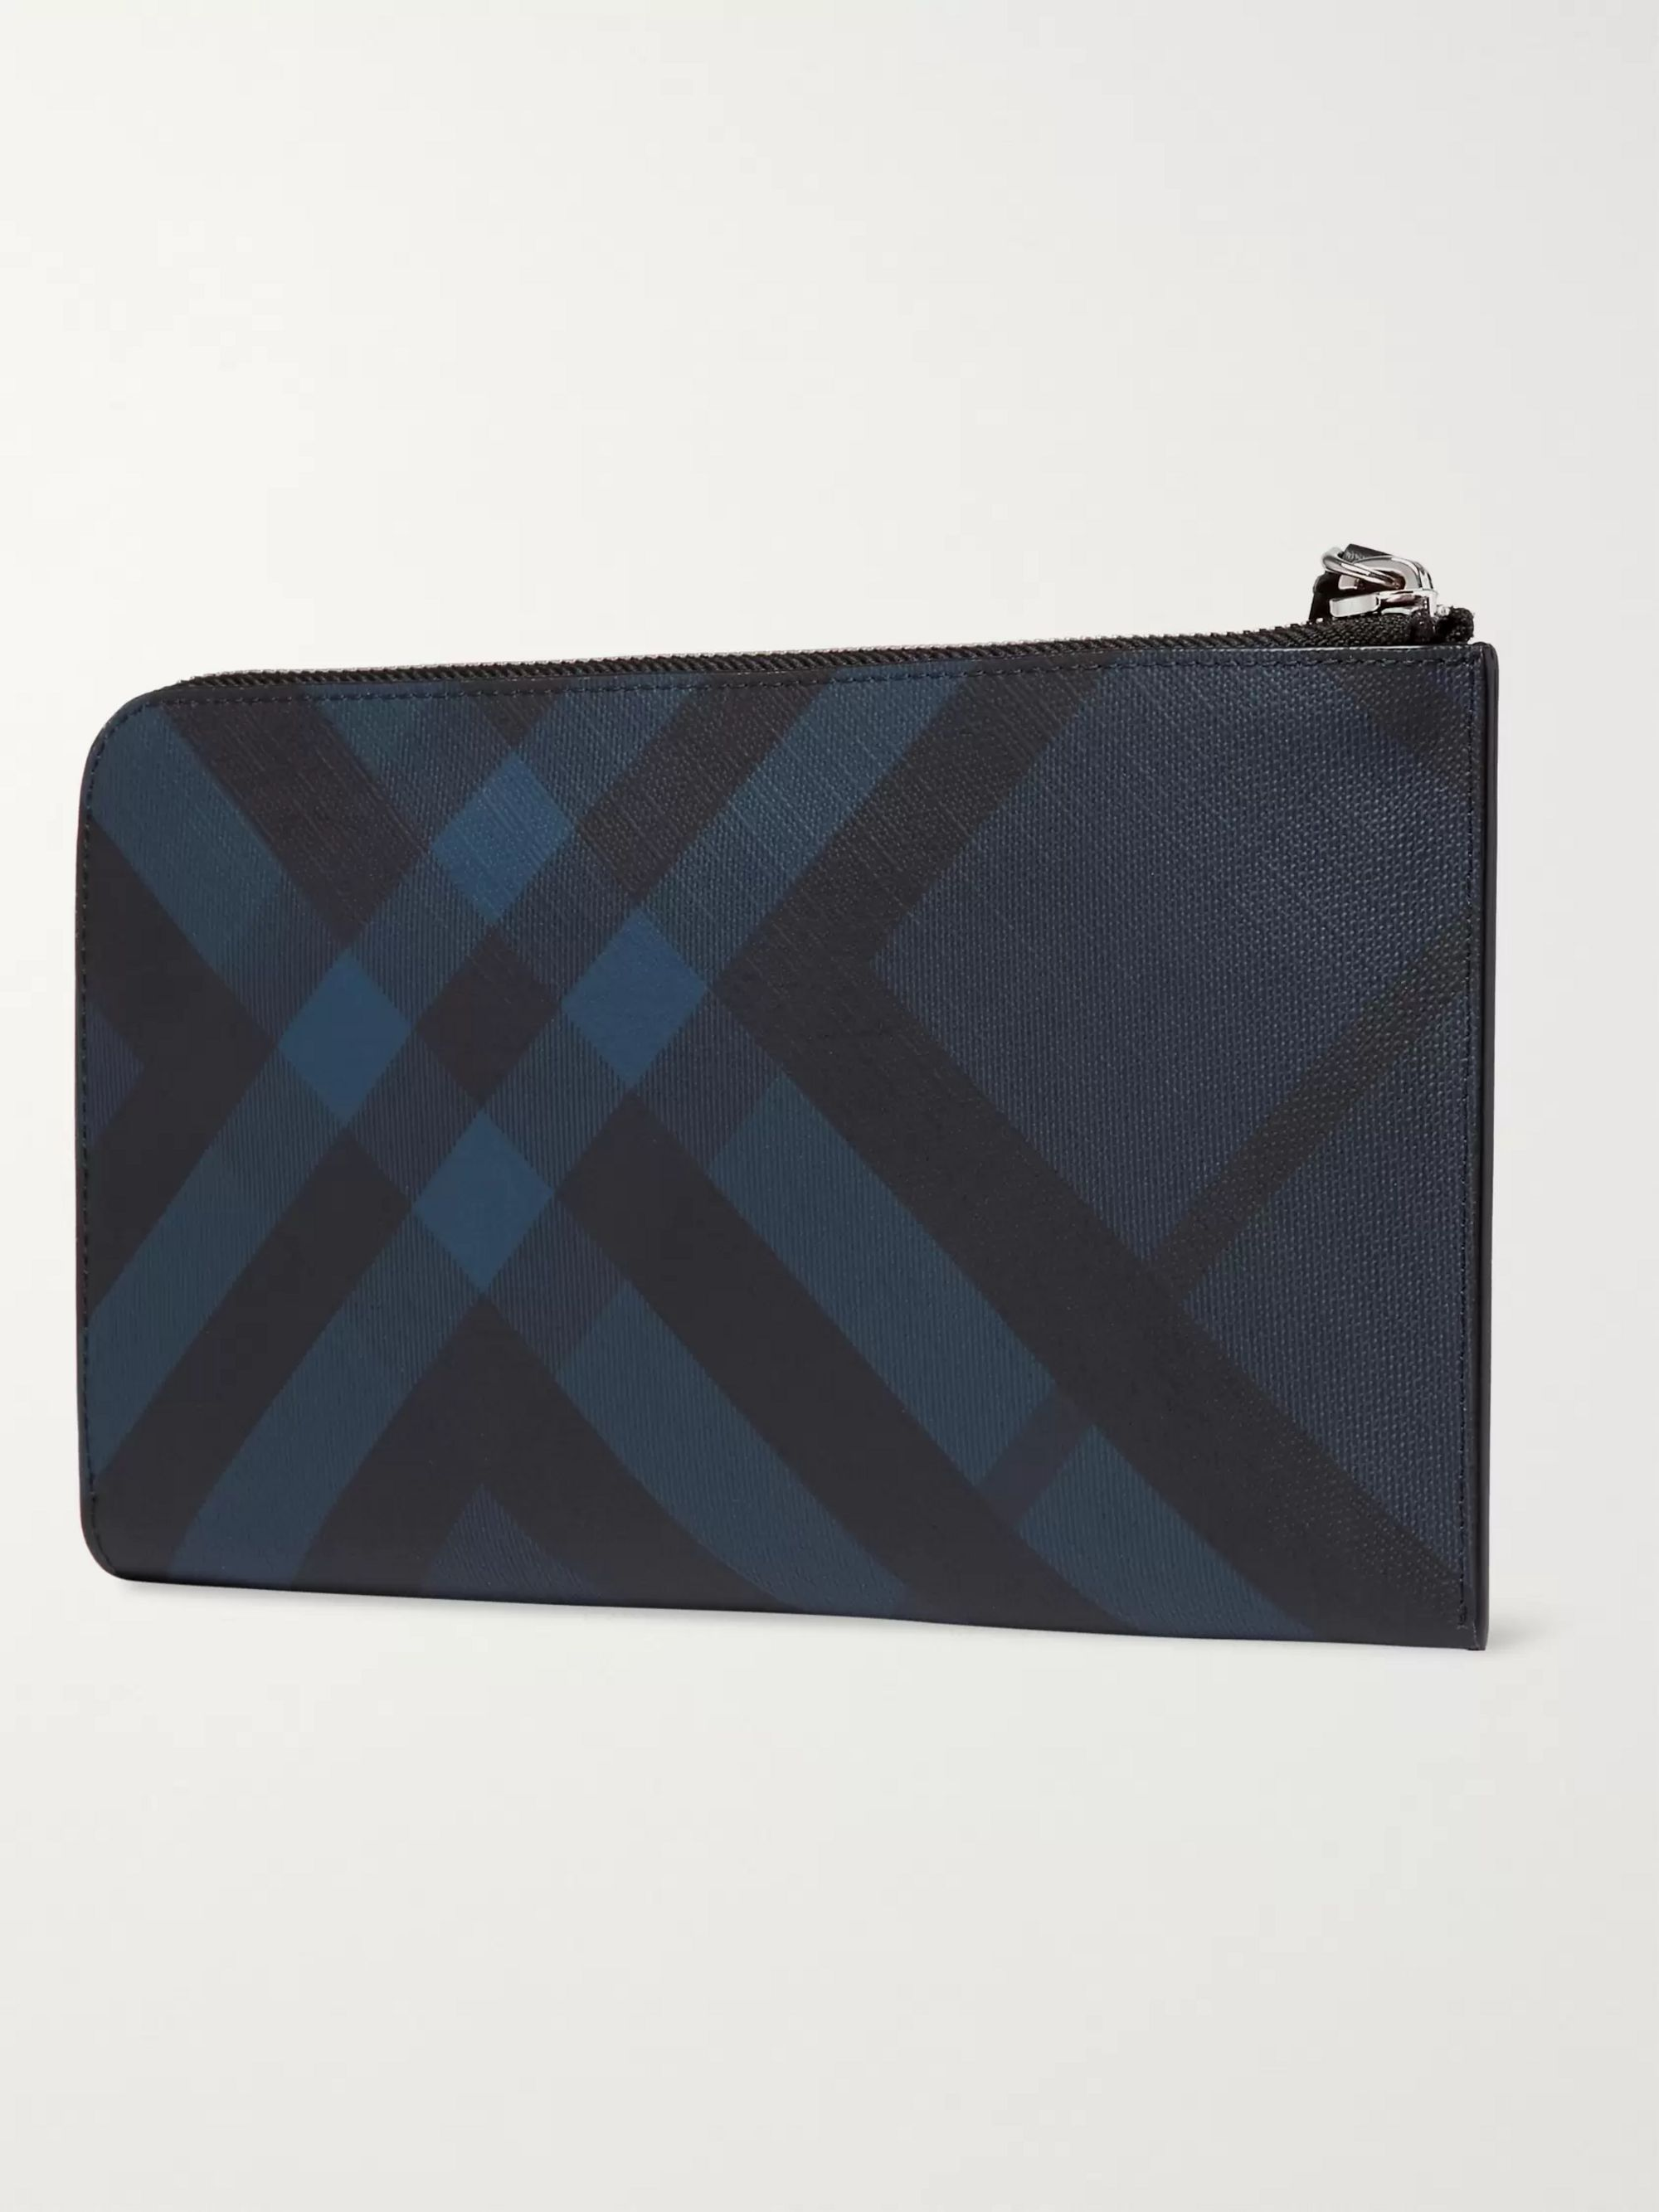 Burberry Checked Coated-Canvas and Leather Zip-Around Travel Wallet